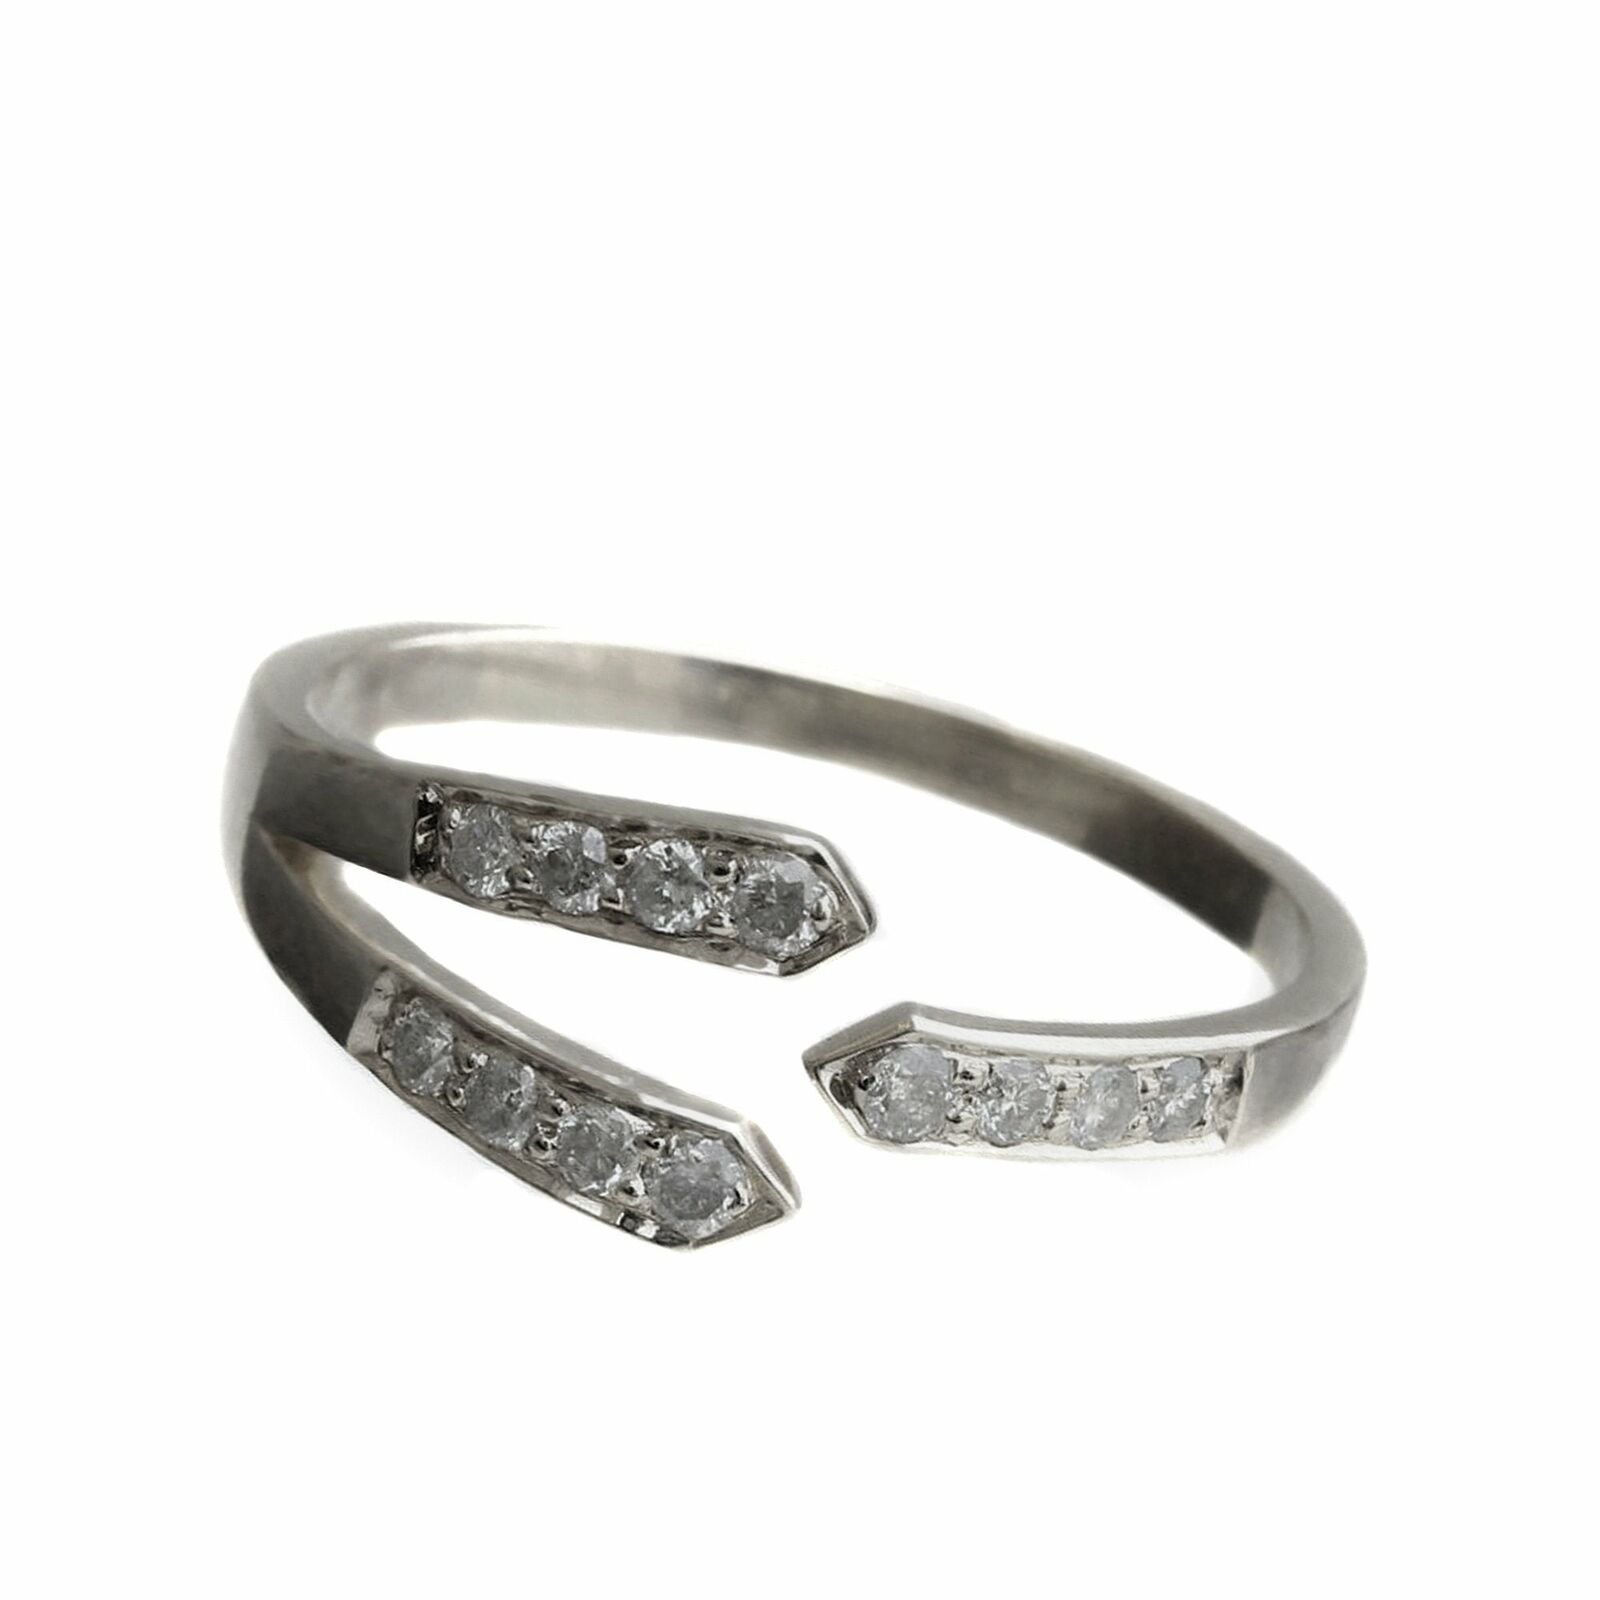 Natural Pave Diamond 925 Sterling Silver Ring Fine Gift her jewelry